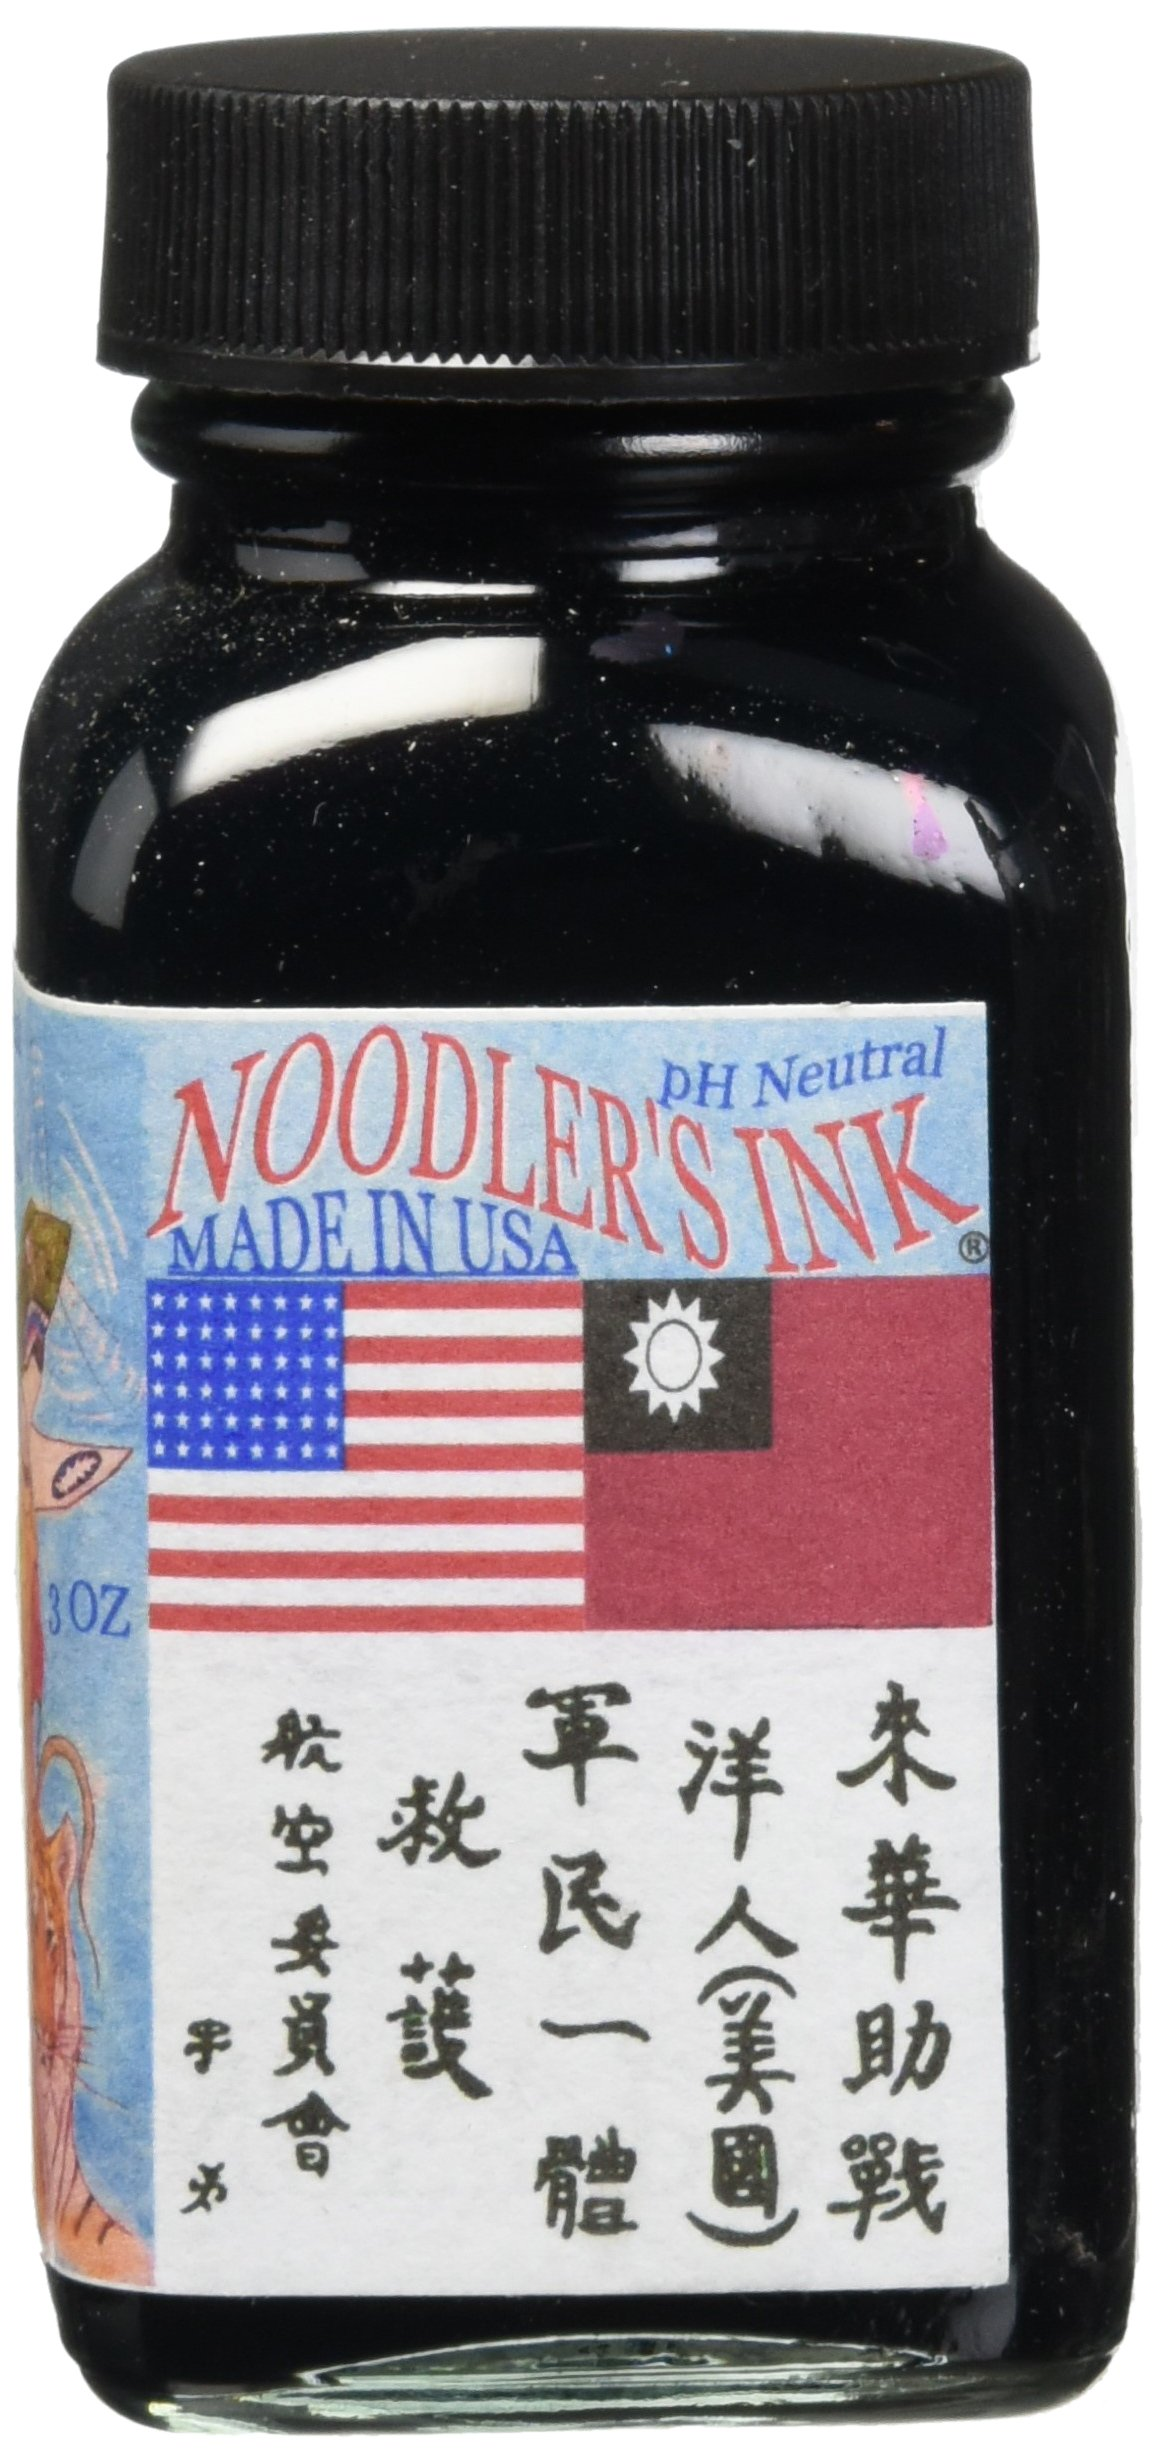 Noodlers Ink 3Oz Aircorp Blue Black by Noodler's (Image #1)